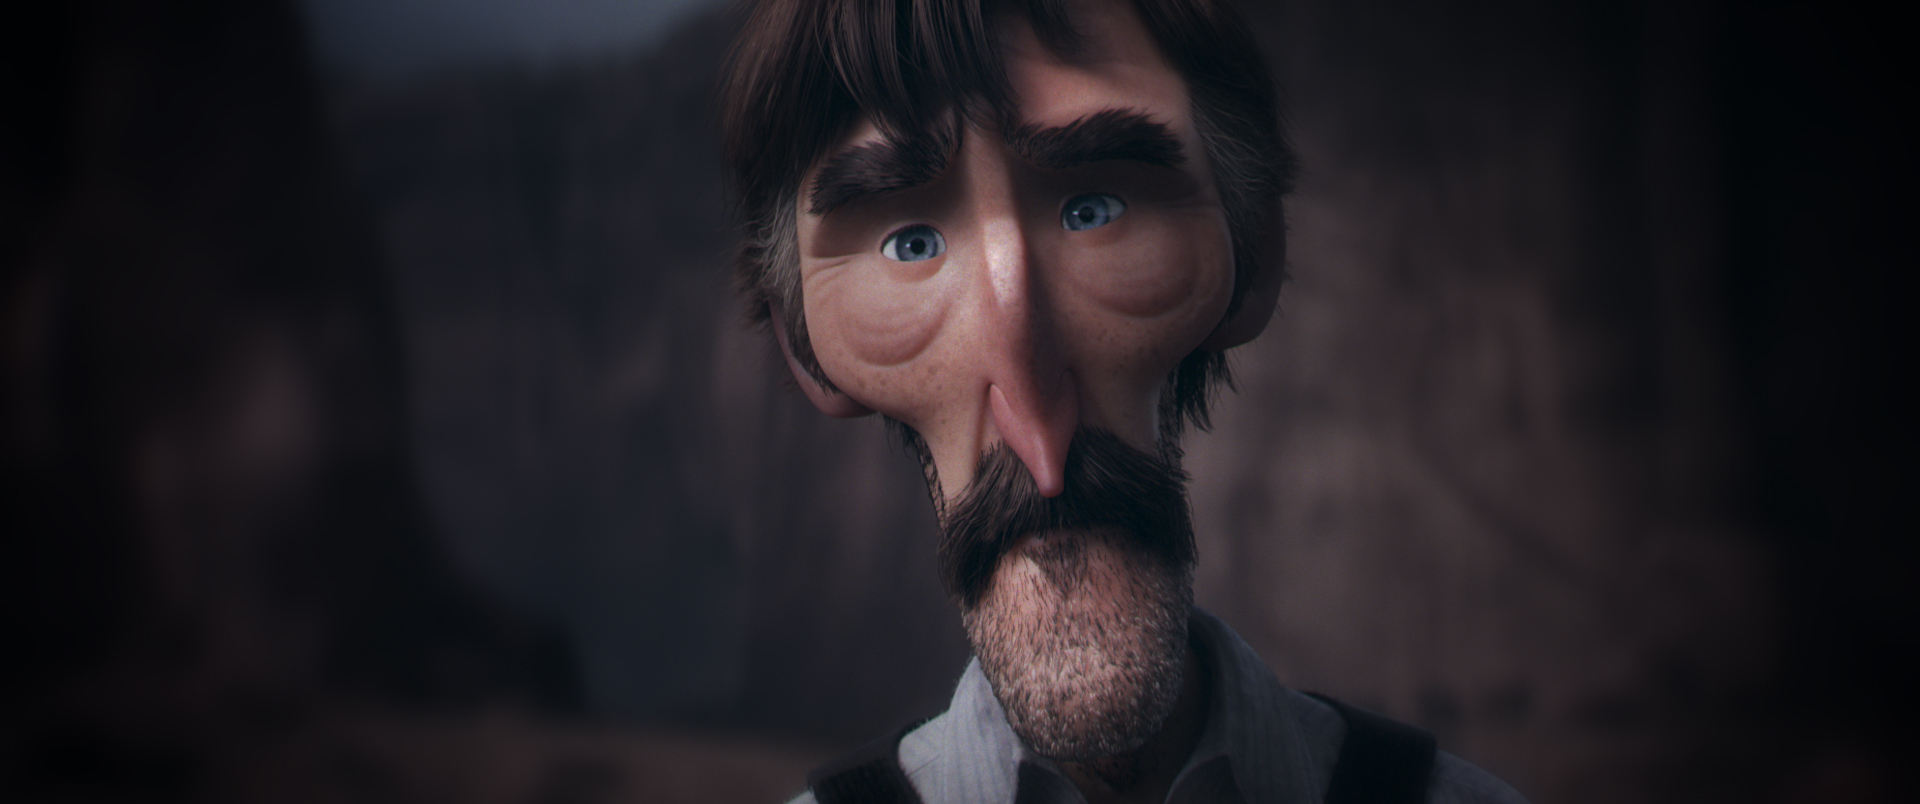 'Borrowed Time' Represents Pixar Animators' Dismal Side